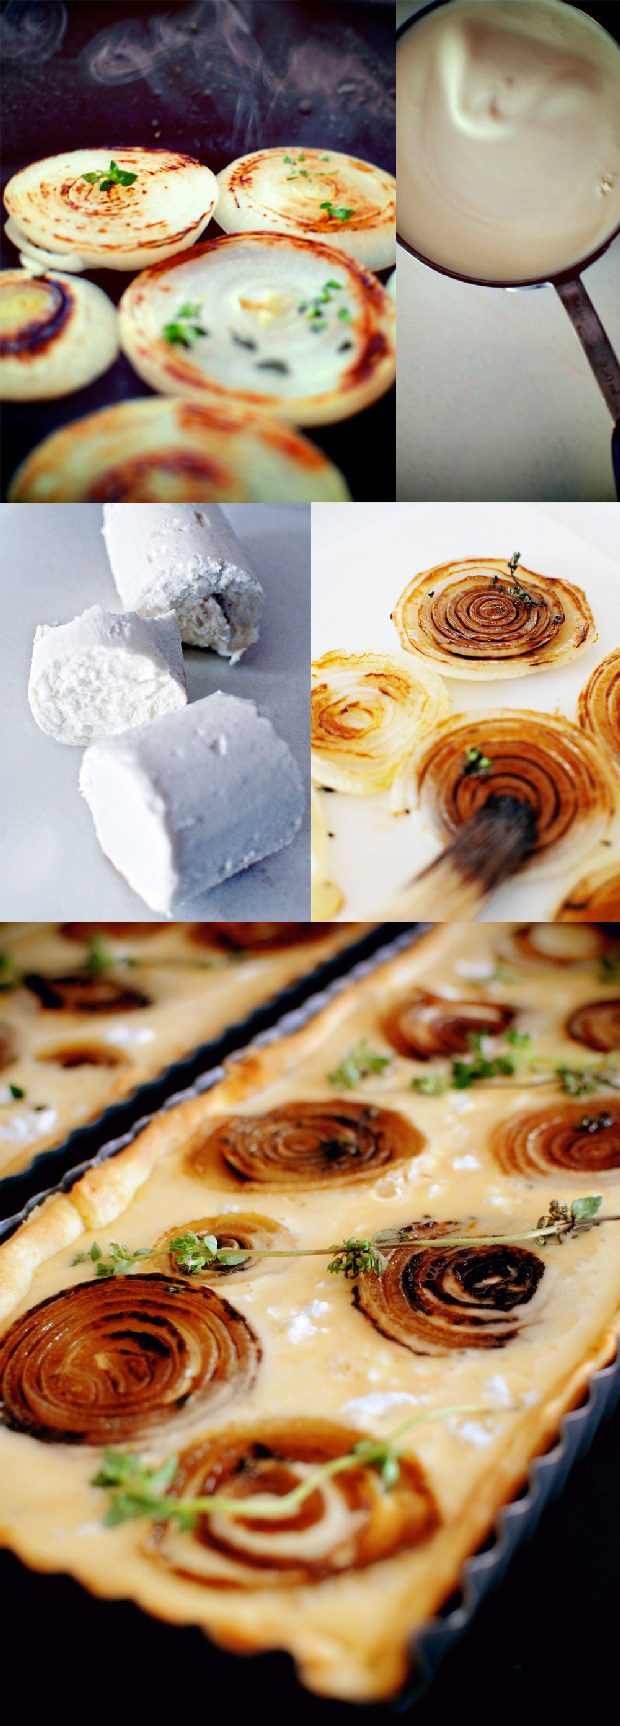 Caramalised-onion-and-Goats-cheese-tart